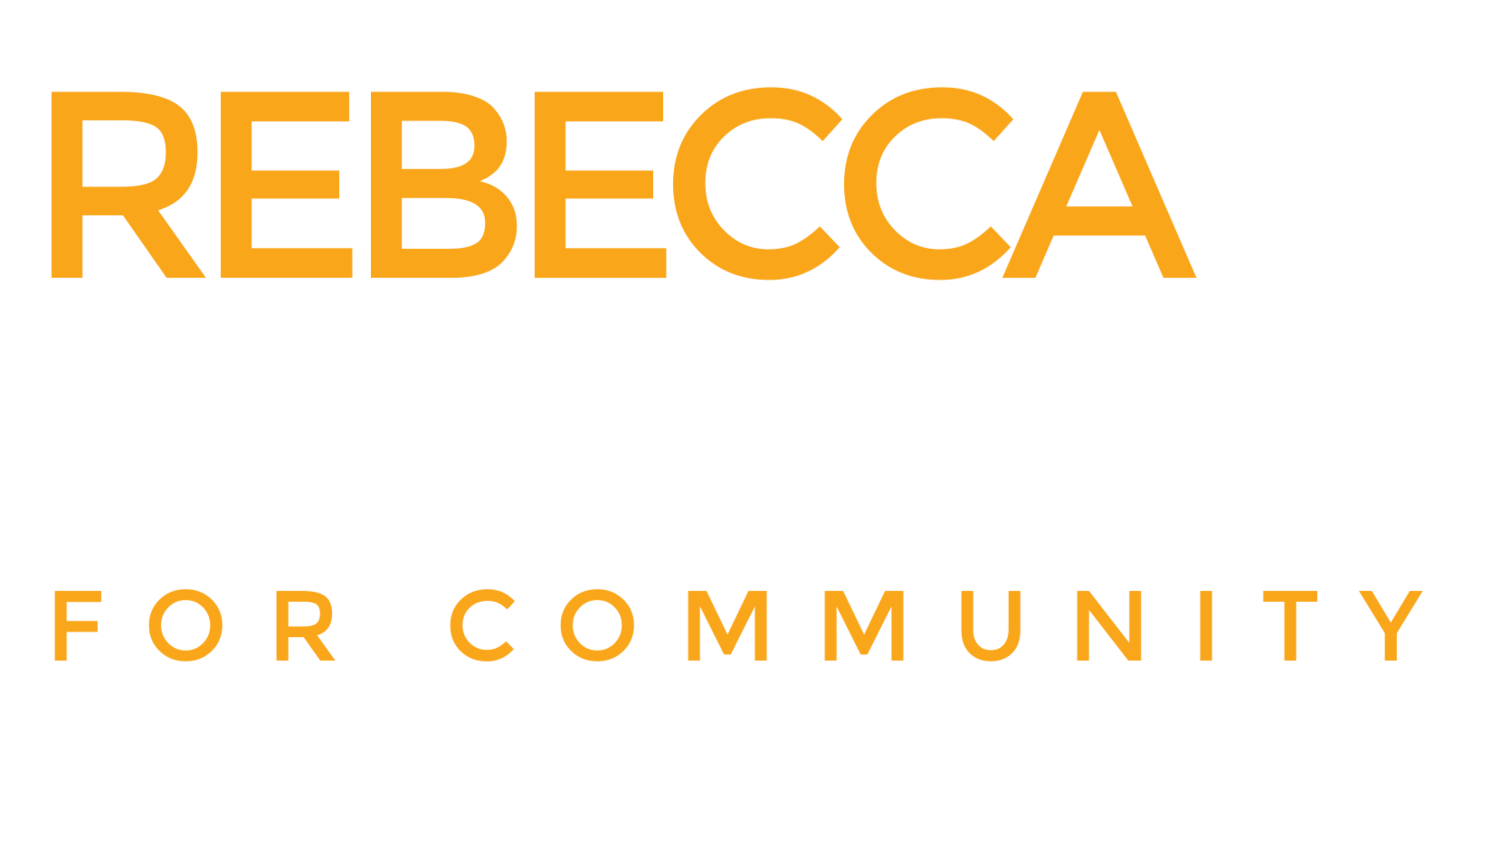 Rebecca Barrett for Community College Board 2018